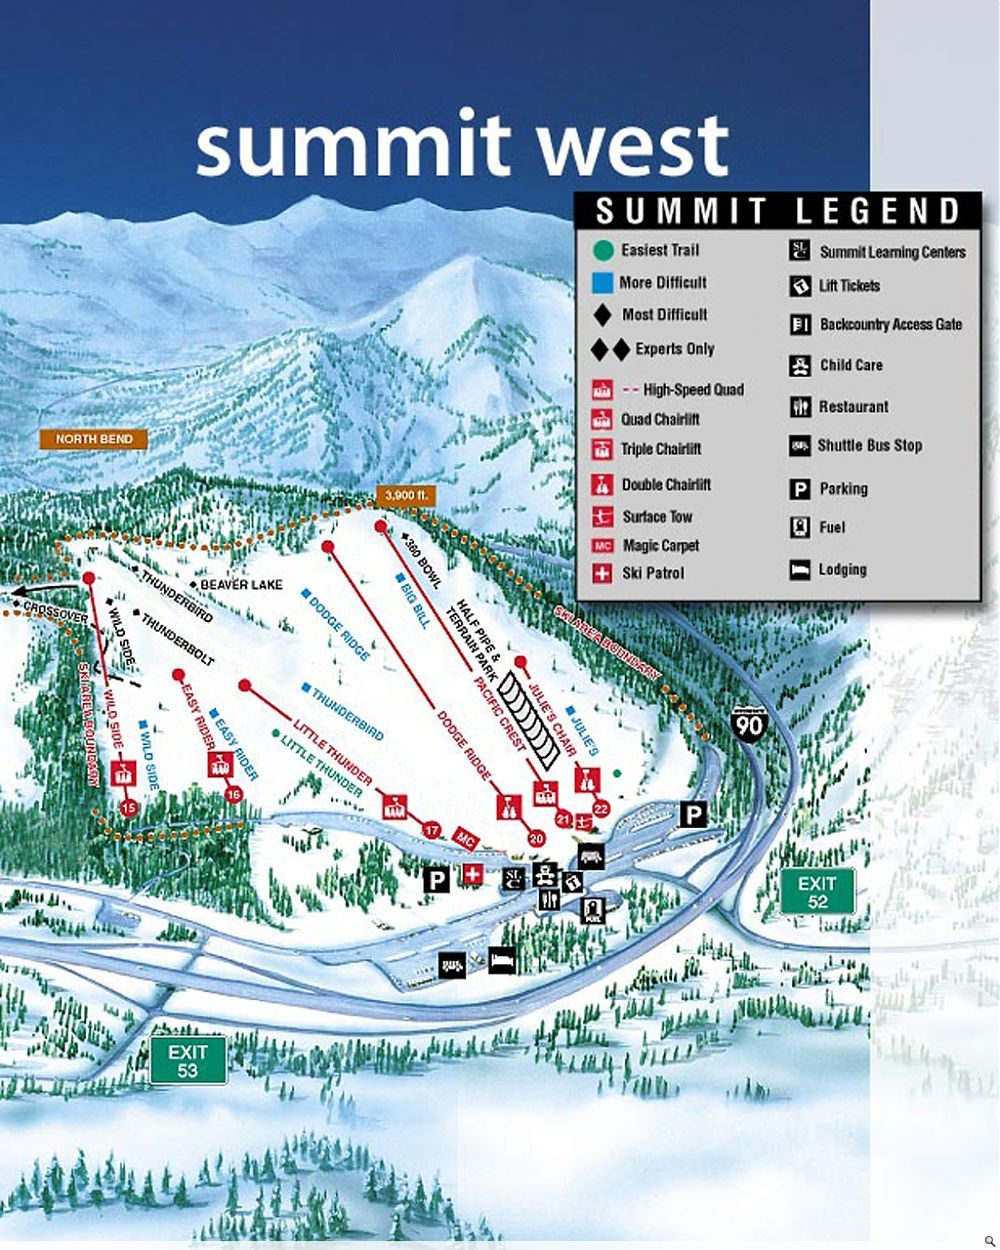 Snoqualmie Pass Wa There Are Actually 4 Different Ski Areas On The